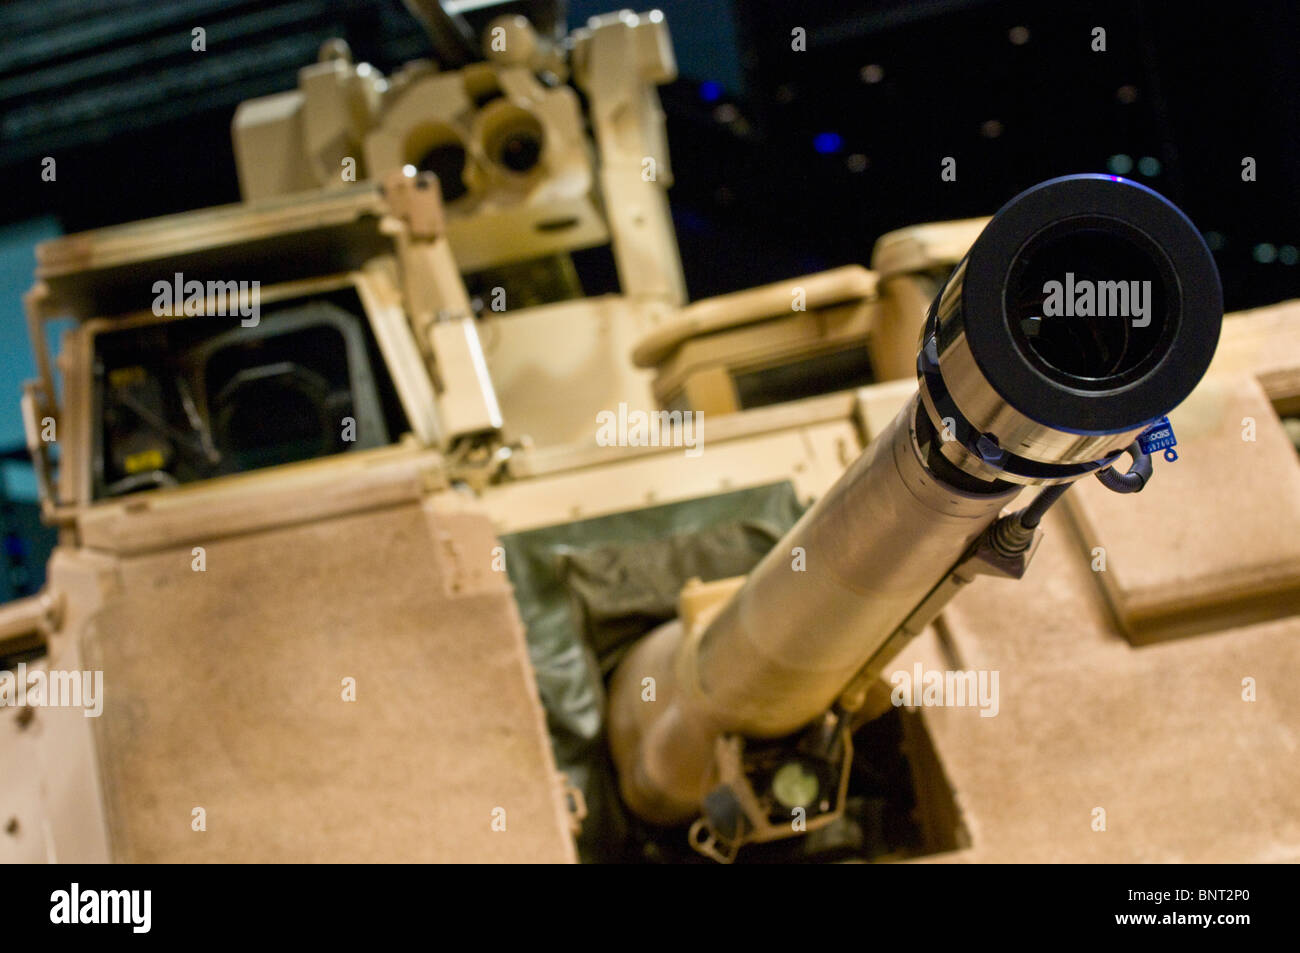 The Defence Systems and Equipment International (DSEi) Exhibition 2009, at the ExCel centre, Docklands - Stock Image